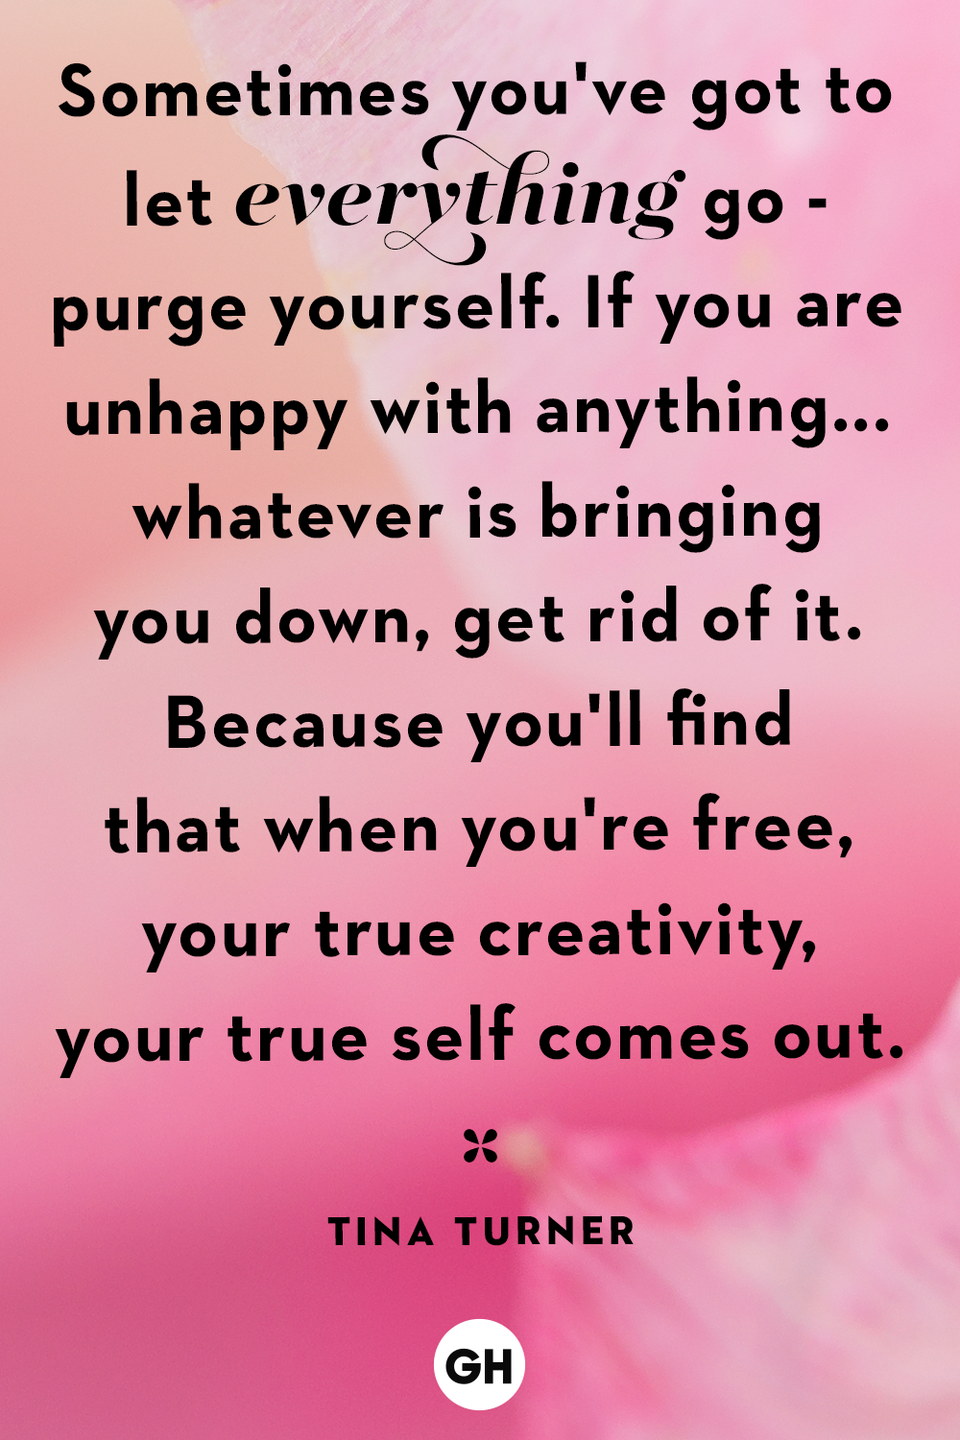 <p>Sometimes you've got to let everything go - purge yourself. If you are unhappy with anything... whatever is bringing you down, get rid of it. Because you'll find that when you're free, your true creativity, your true self comes out.</p>